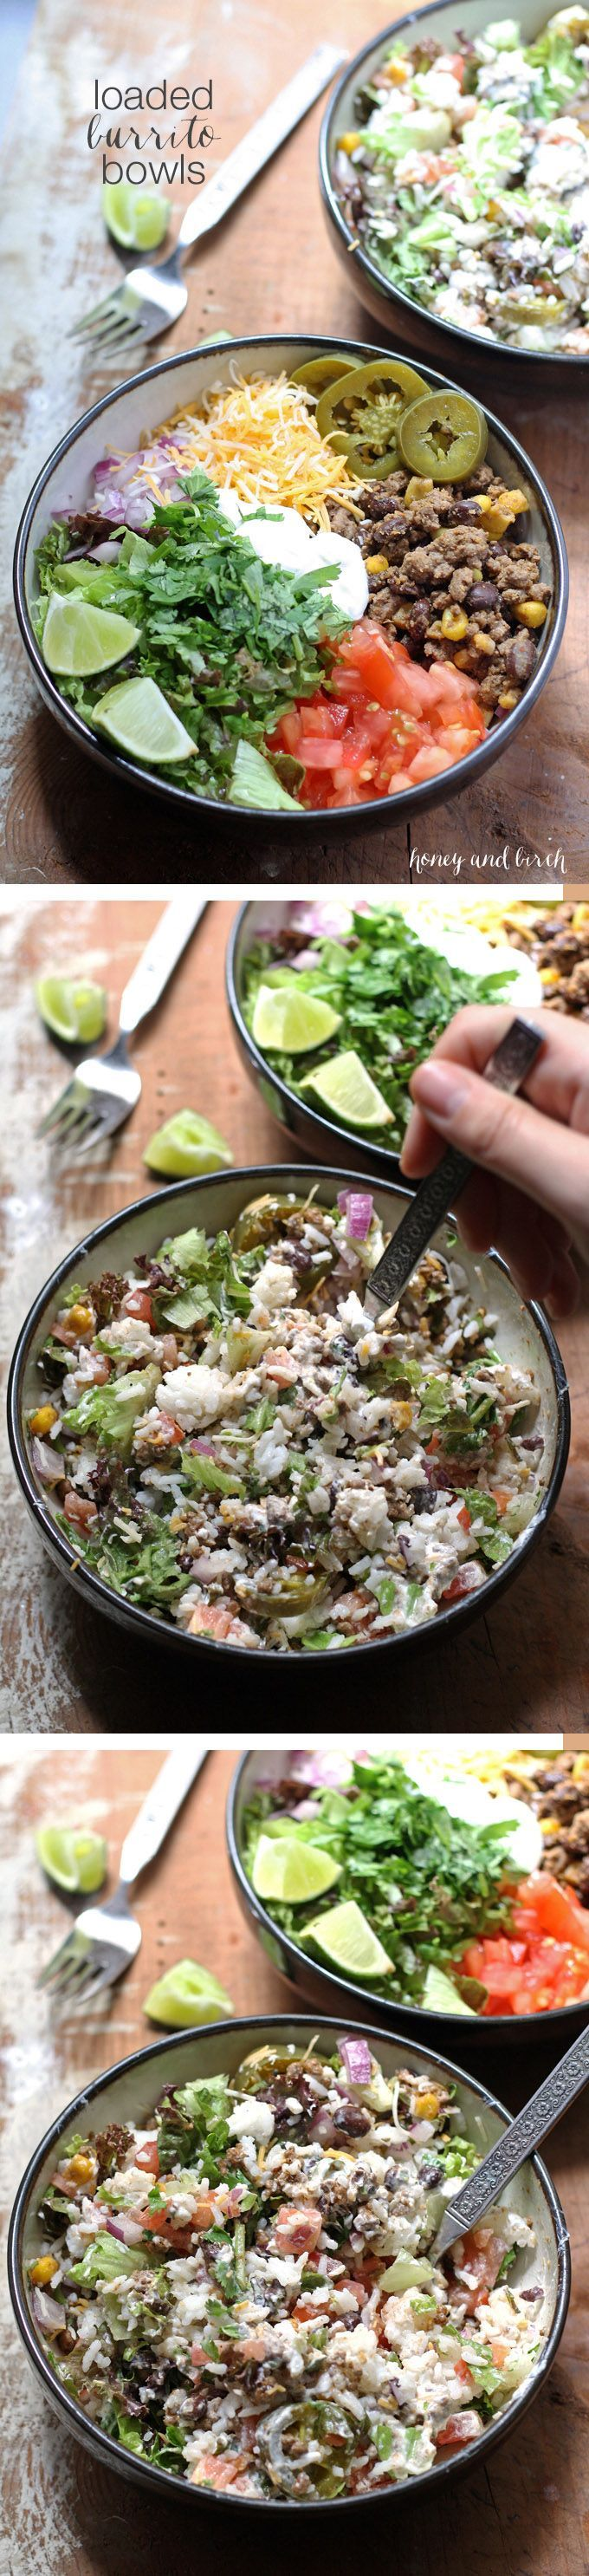 If you have picky eaters or need to eat dinner quick, this recipe for loaded burrito bowls will hit the spot!   www.honeyandbirch.com